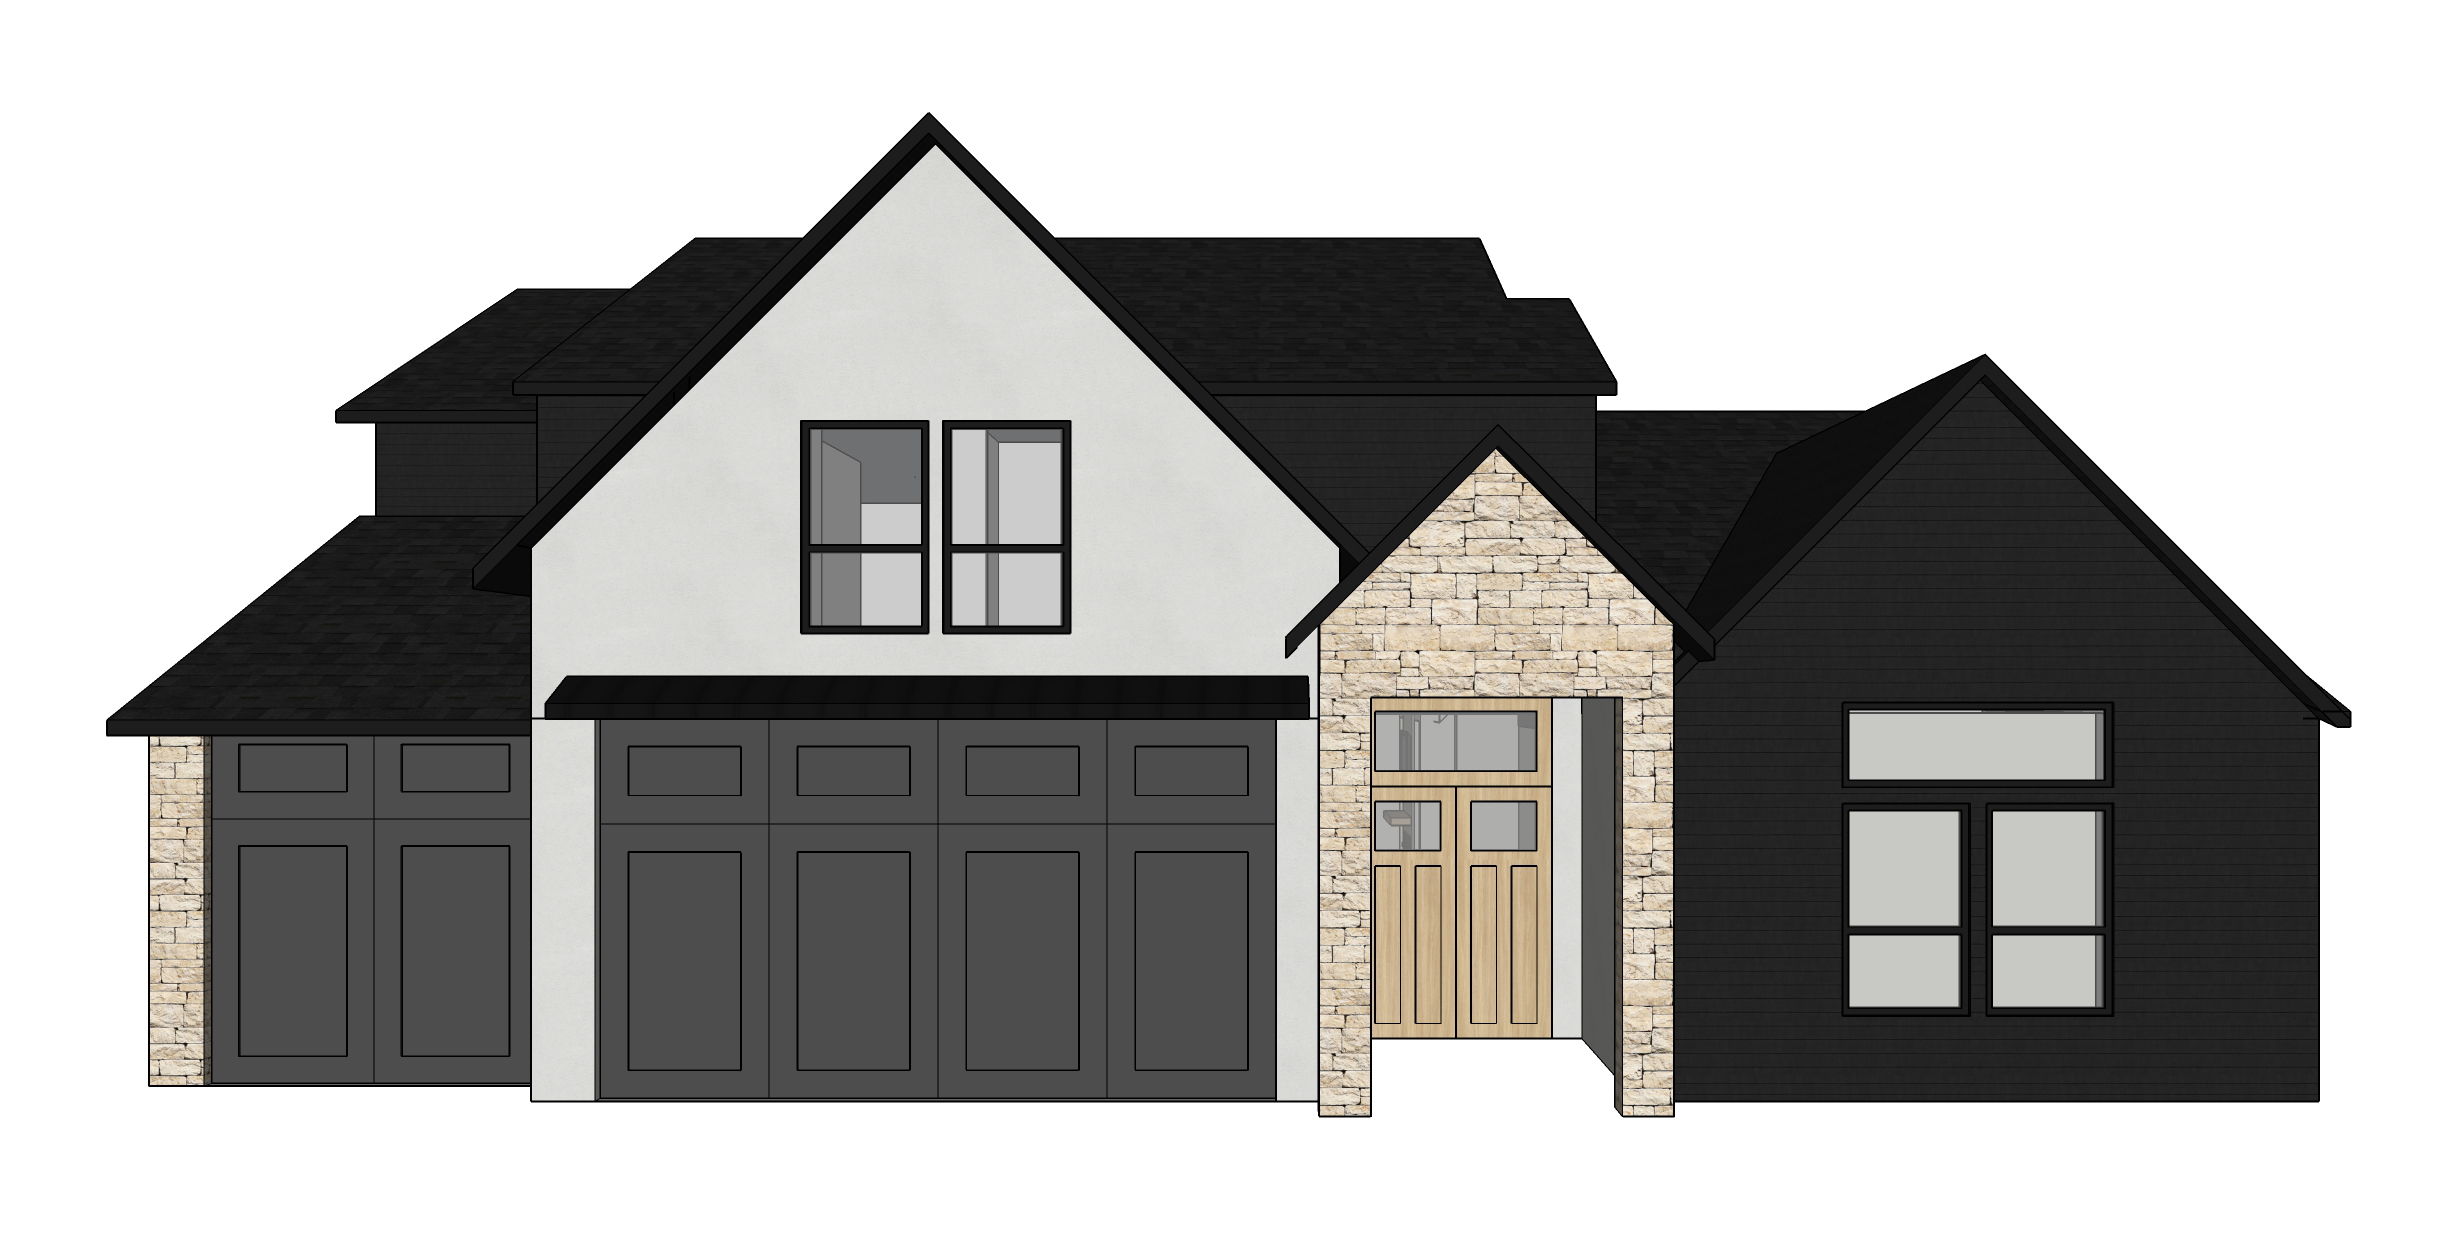 our 3d model with materials — warm, neutral stone, light gray stucco, and charcoal siding